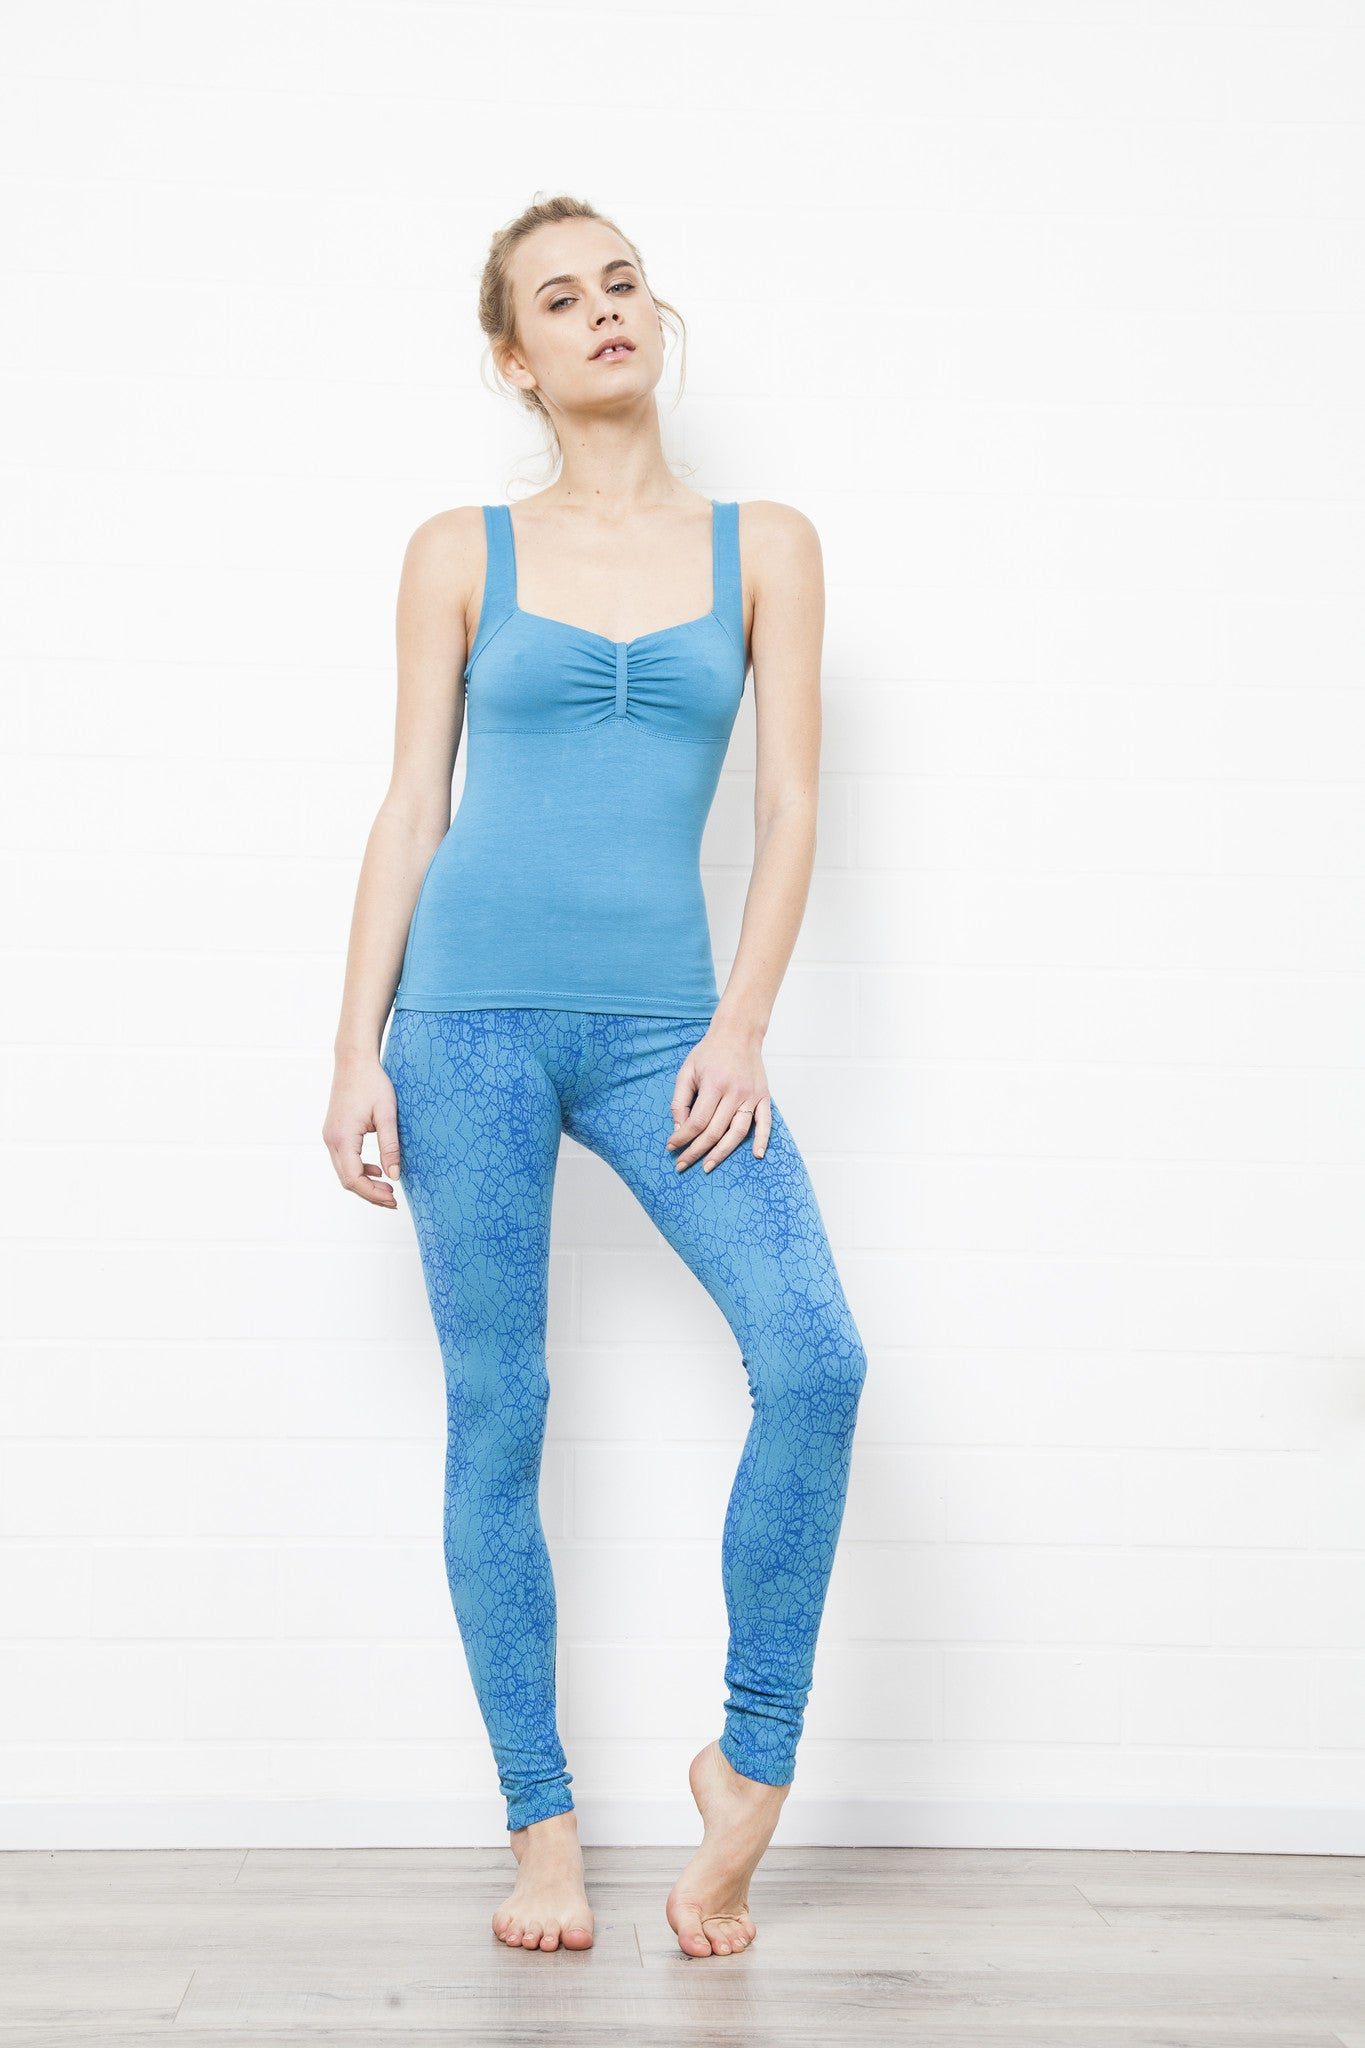 Turquoise Cactus Leggings - Yoga Tights - FUNKY SIMPLICITY